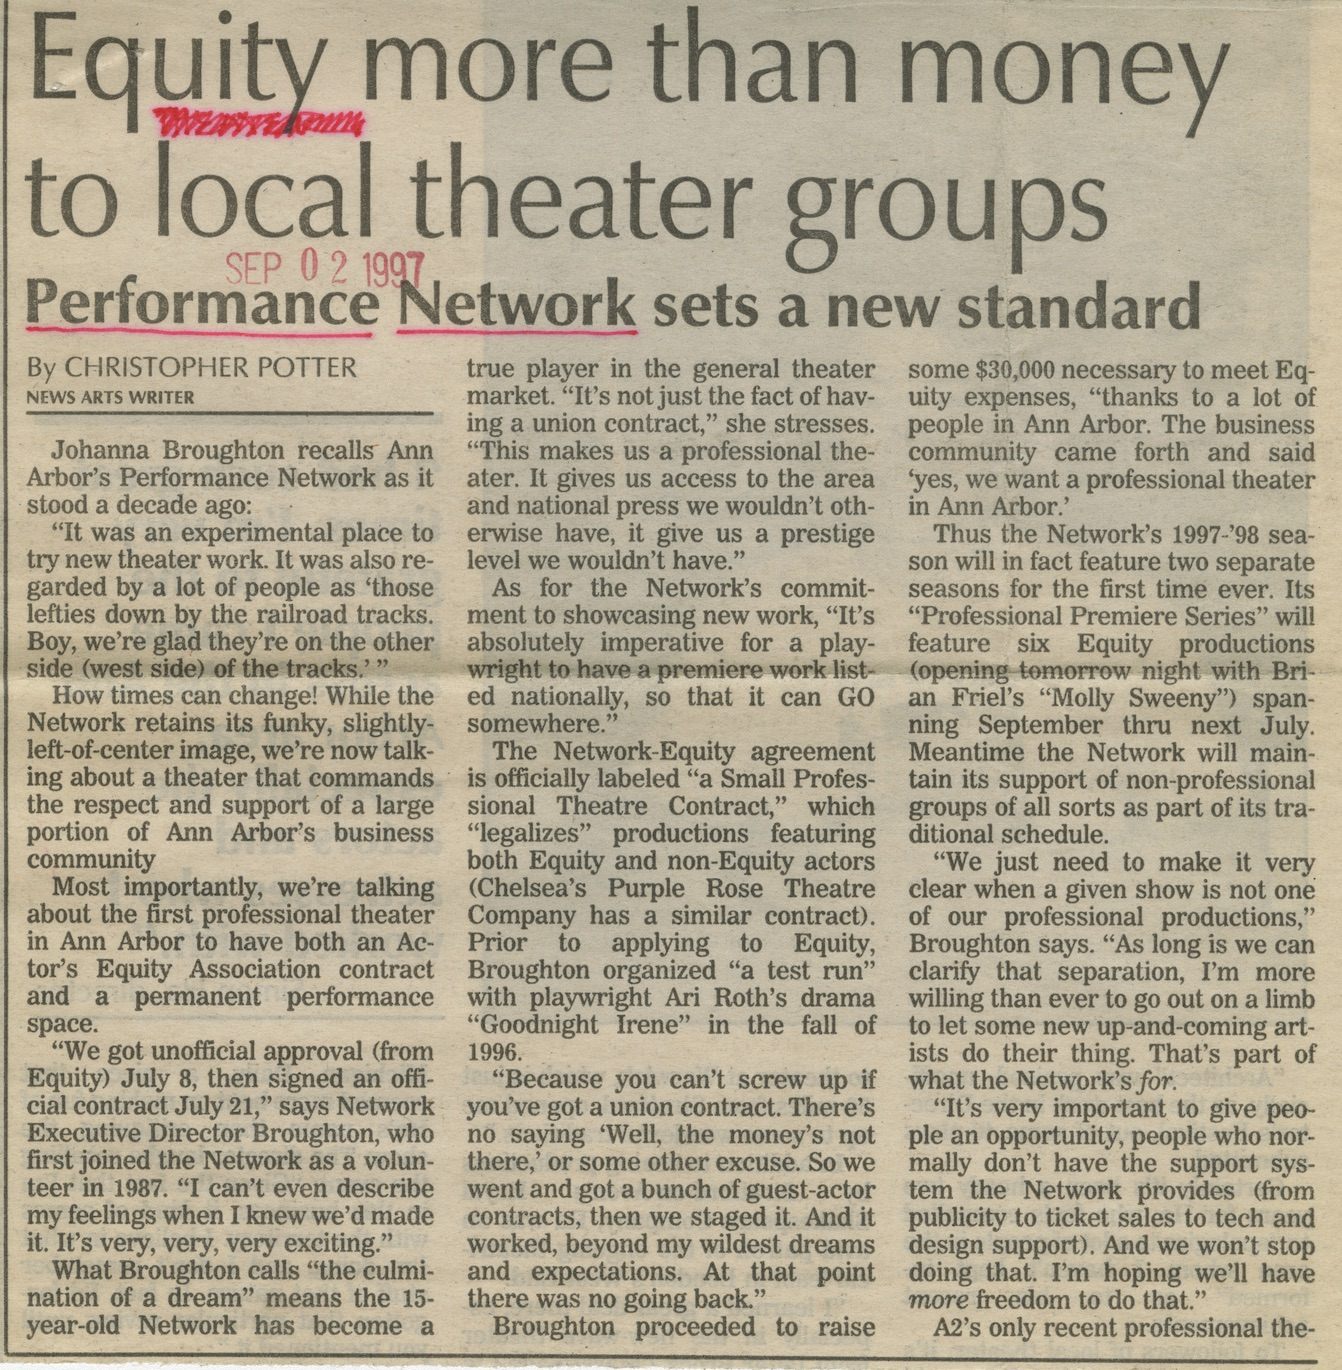 Equity more than money to local theater groups image